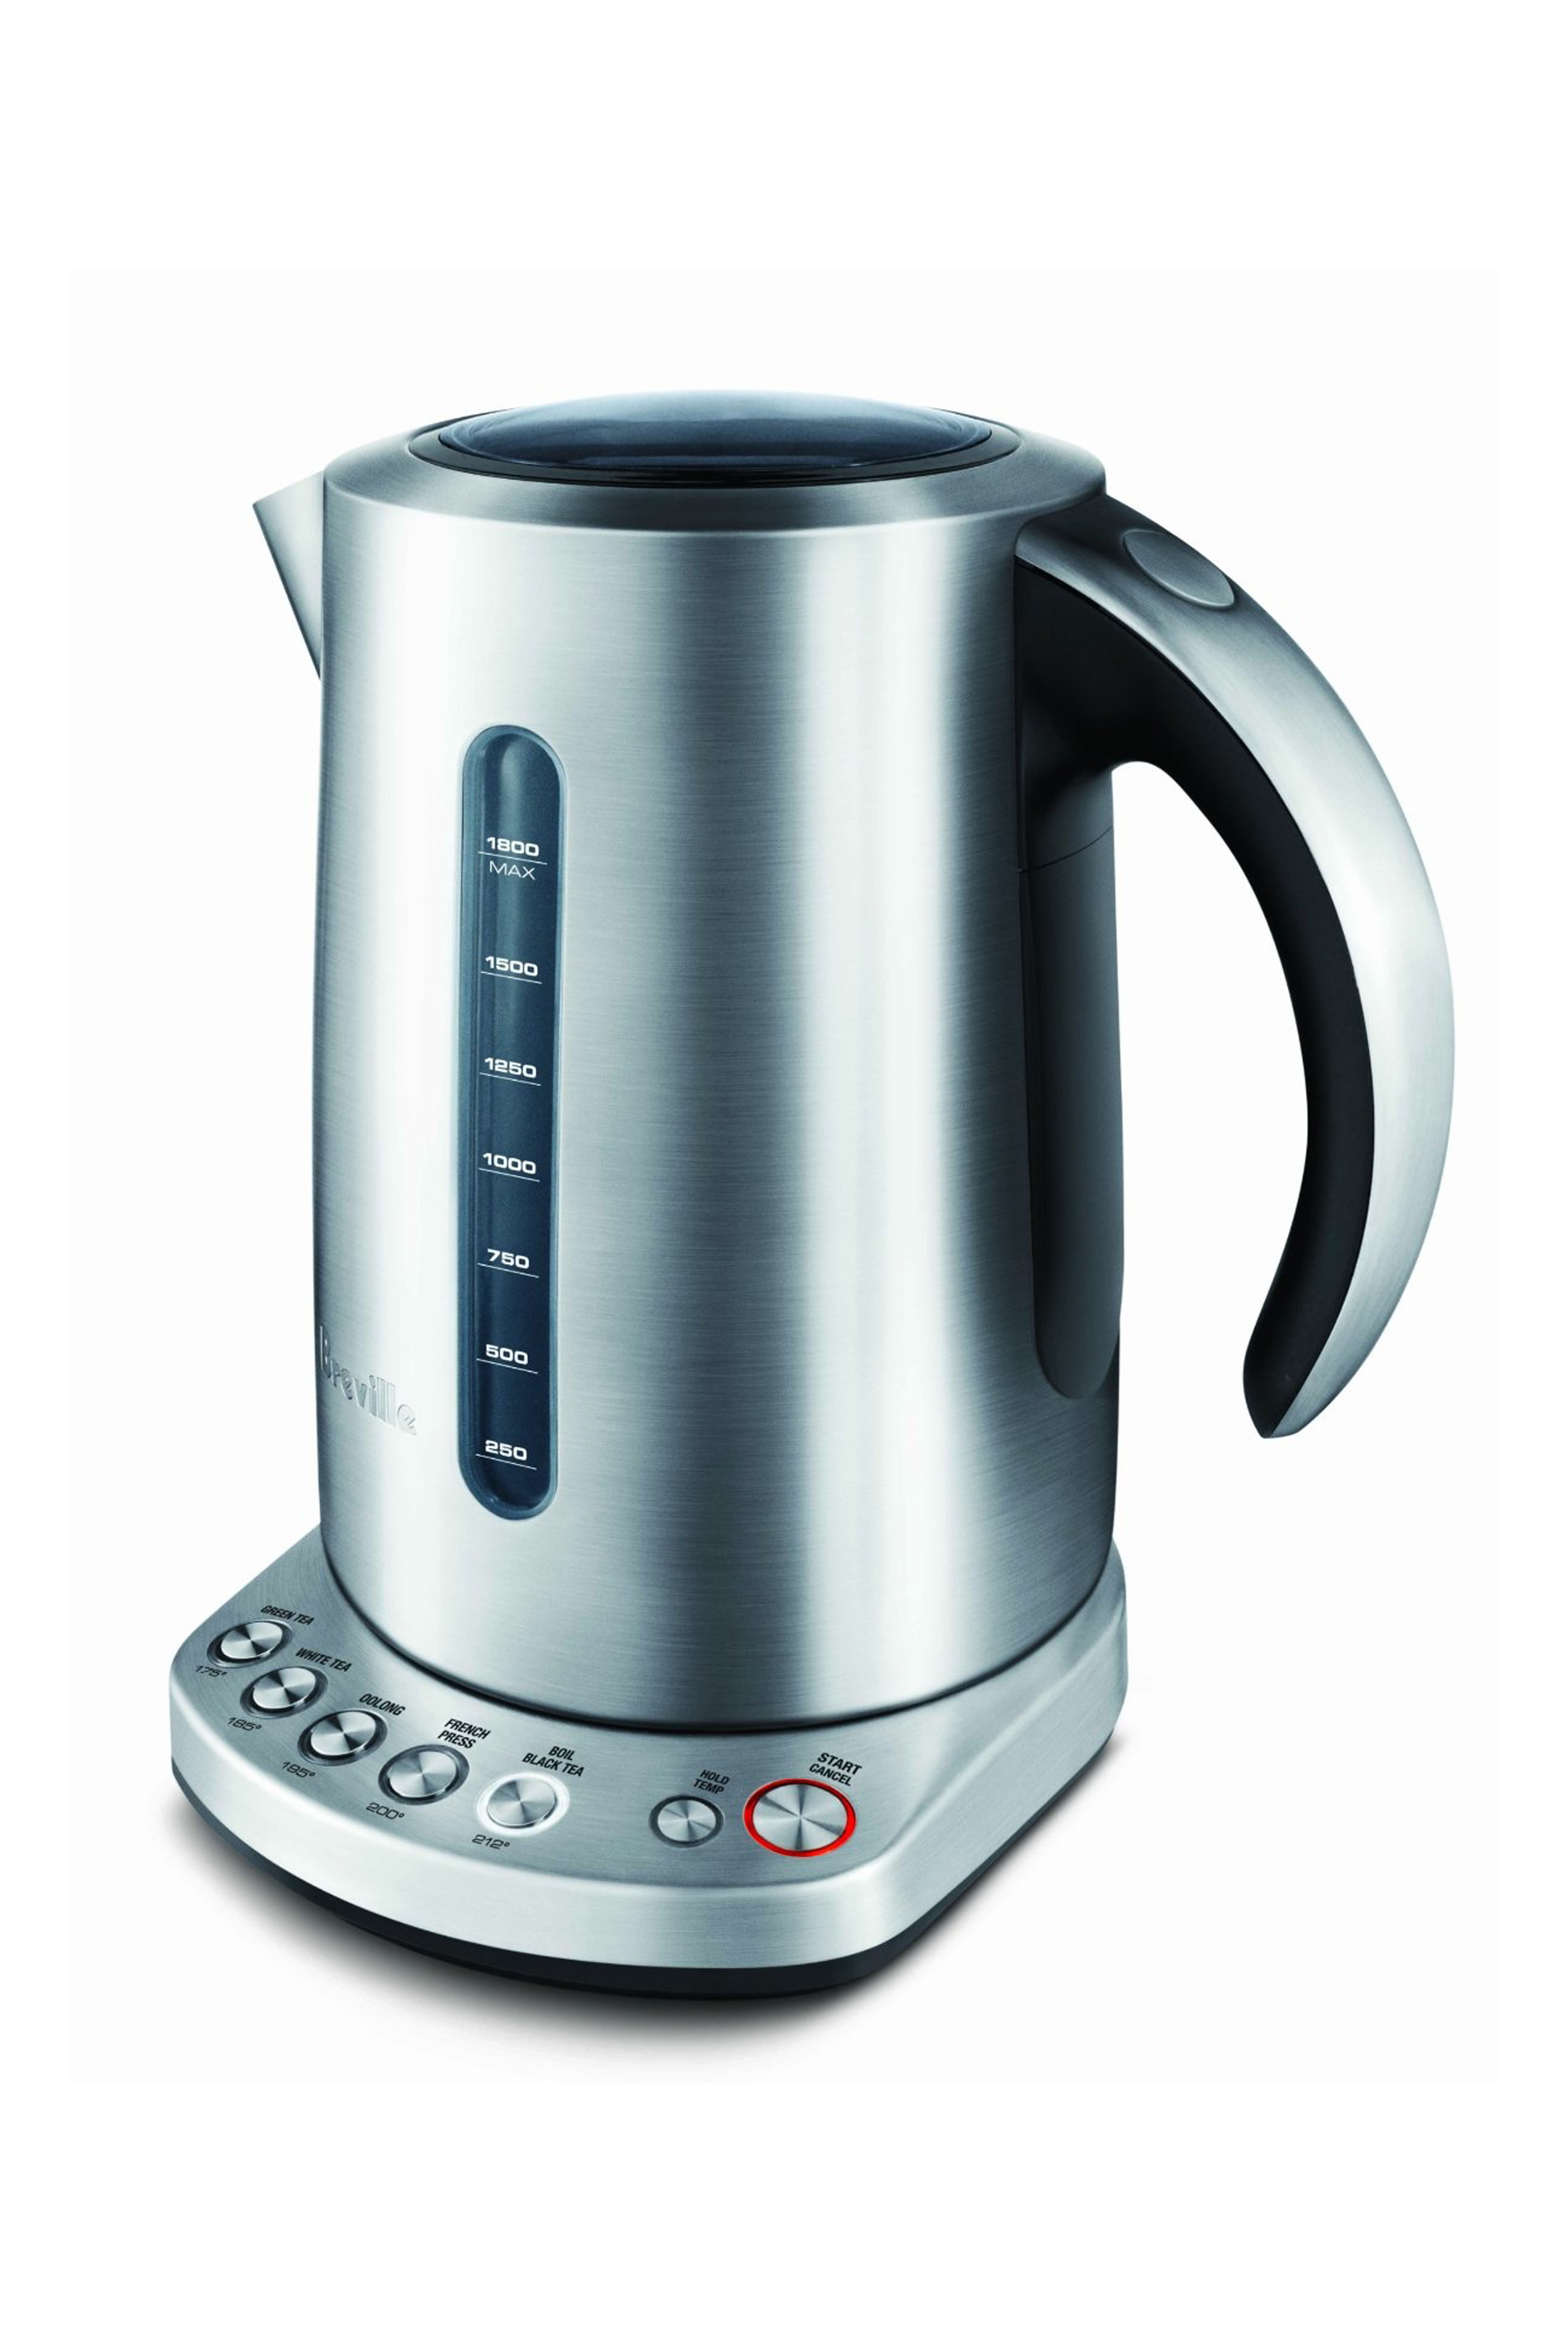 appliance reviews best small appliances